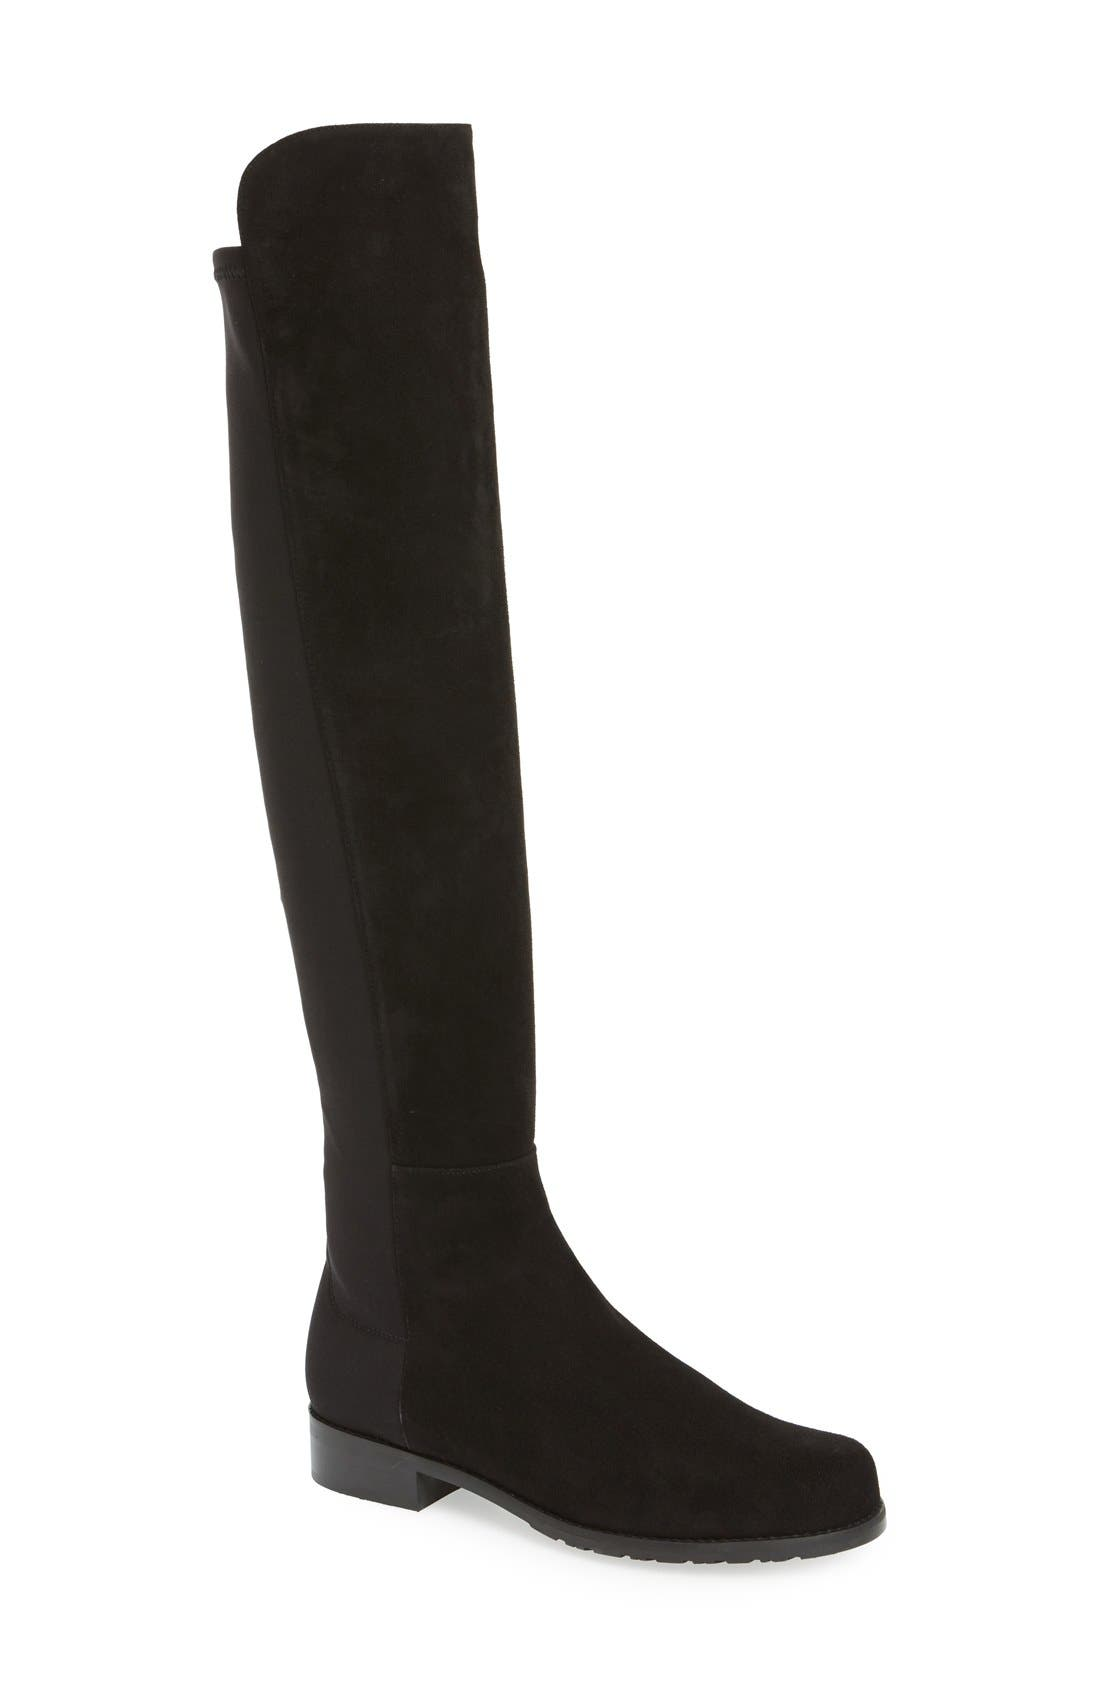 5050 Over the Knee Leather Boot,                         Main,                         color, Black Suede